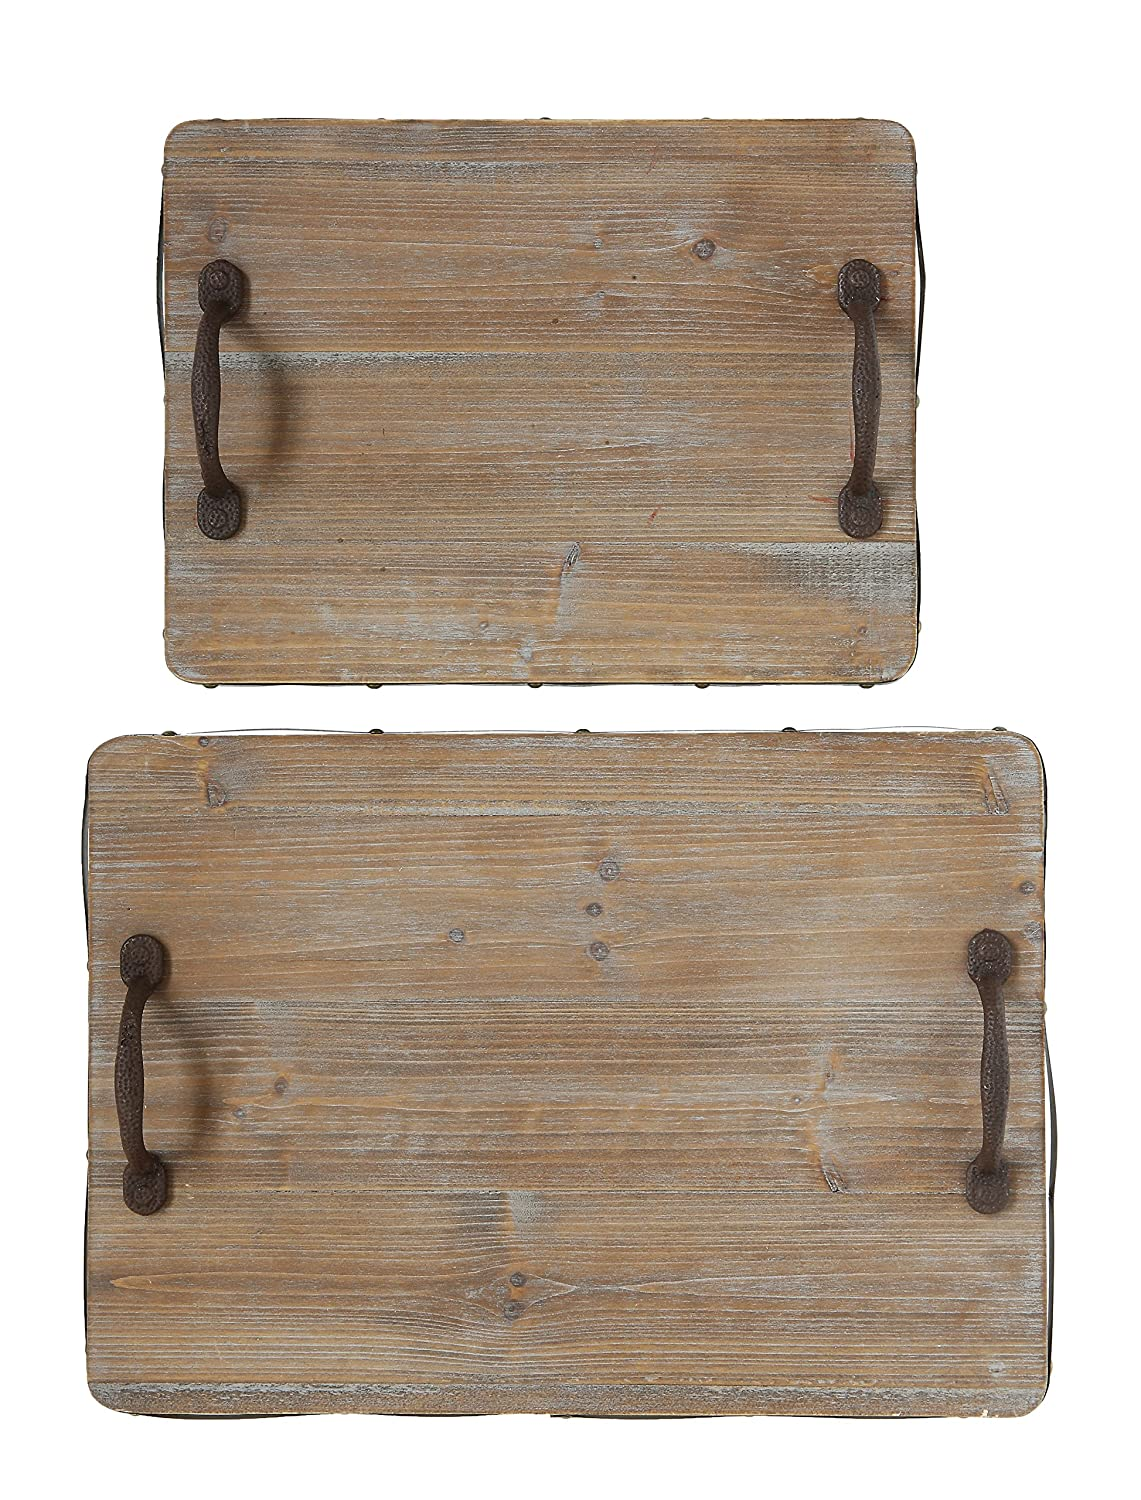 Creative Co-op Decorative Wood Trays with Iron Handles (Set of 2 Sizes) DA7749